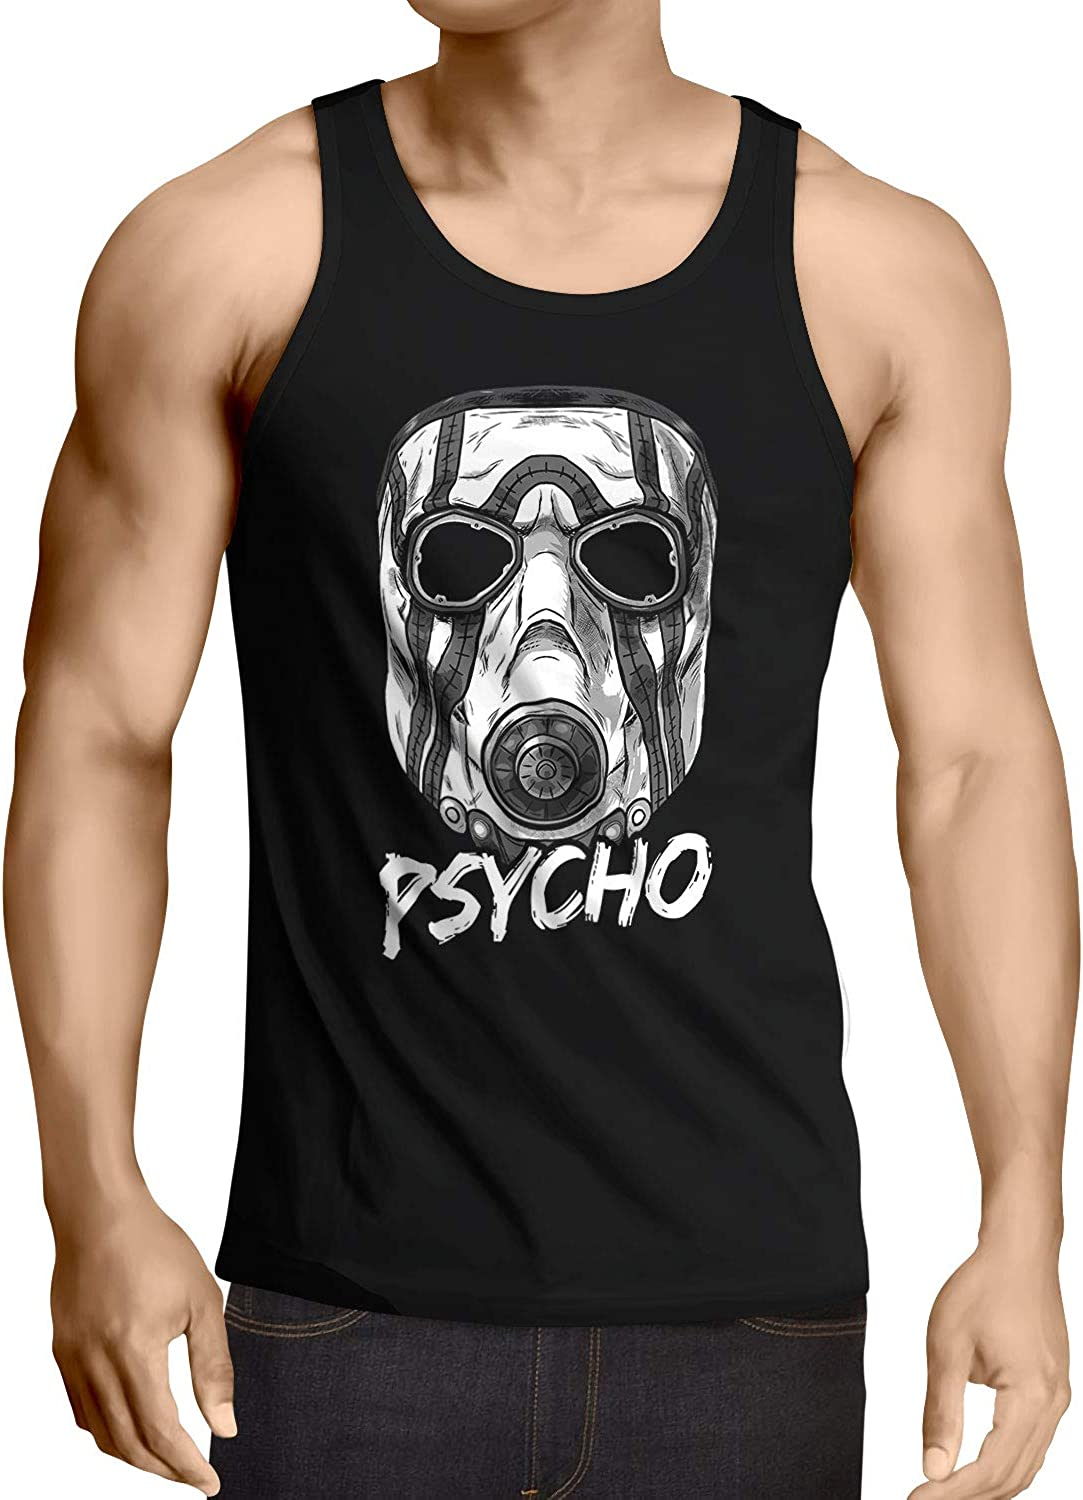 Psycho Tank Top Uomo Canotta Canottiera Cell Shading Ego Shooter Another Nerd T-Shirt A.N.T A.N.T